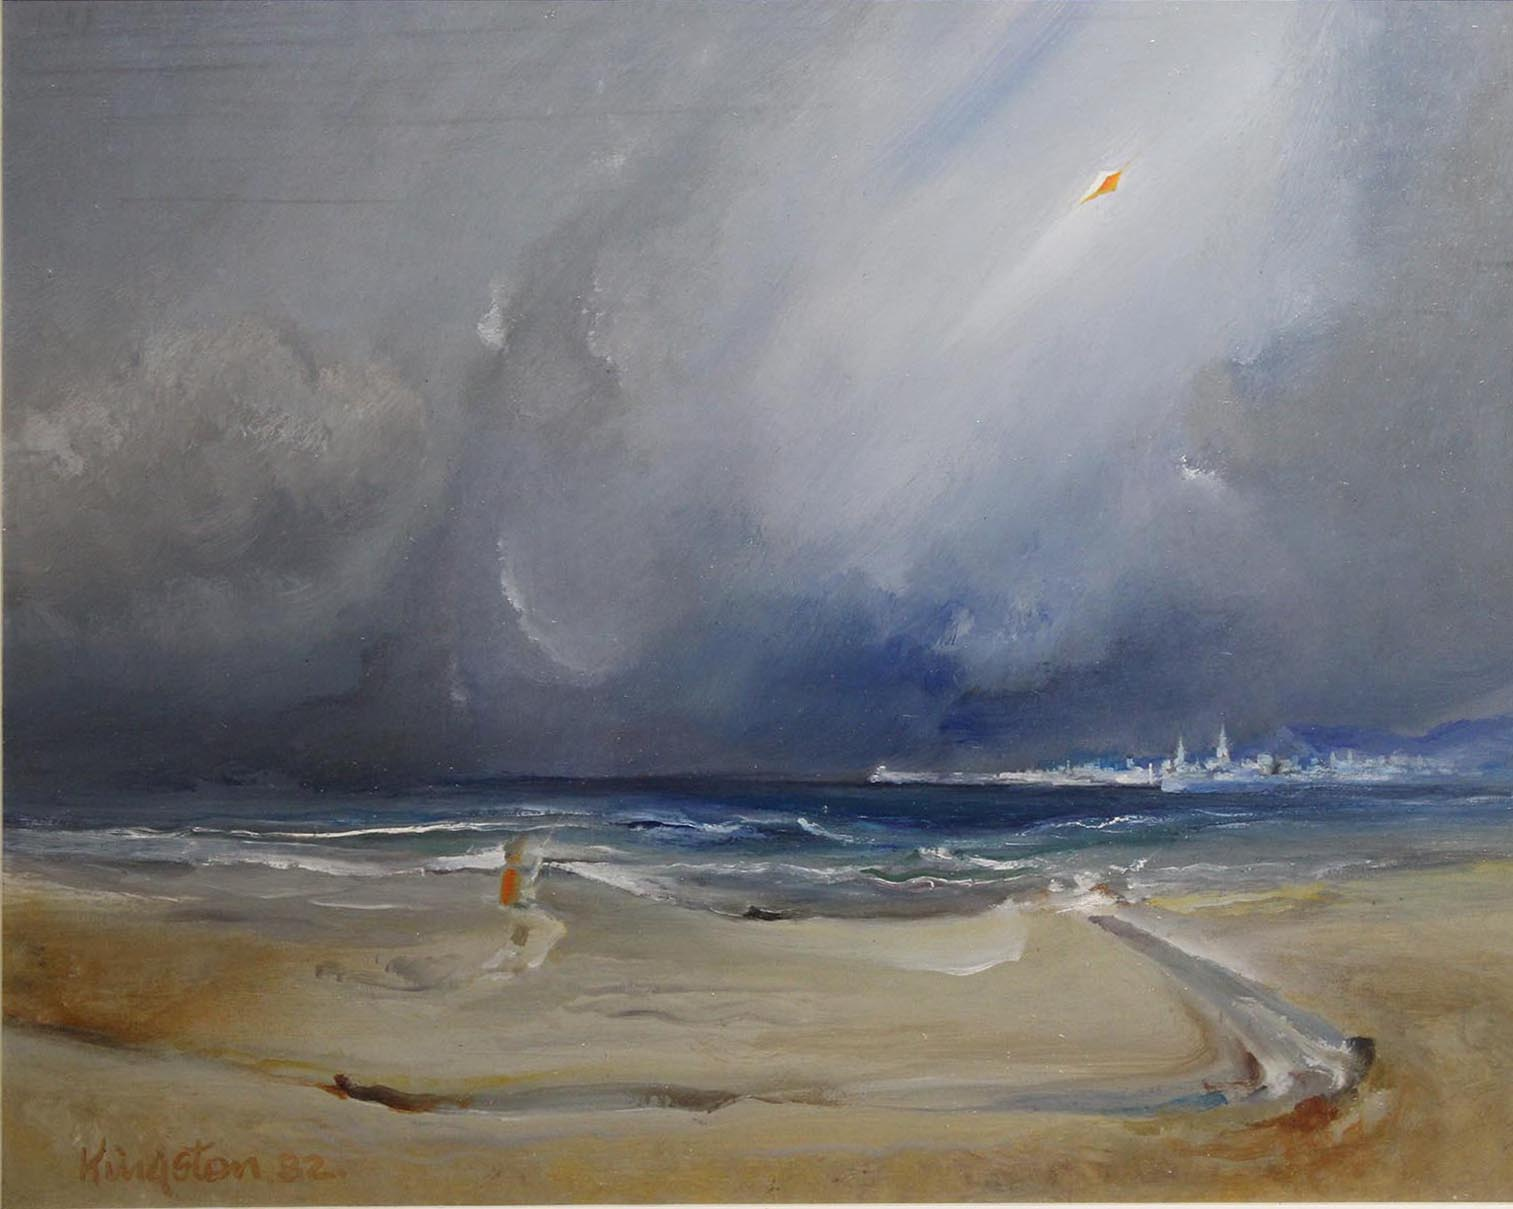 "Lot 54 - Richard Kingston SPACE FOR THE KITE FLYER Oil on board, 15"" x 18 1/2"" (38.1 x 46.4 cm), signed &"